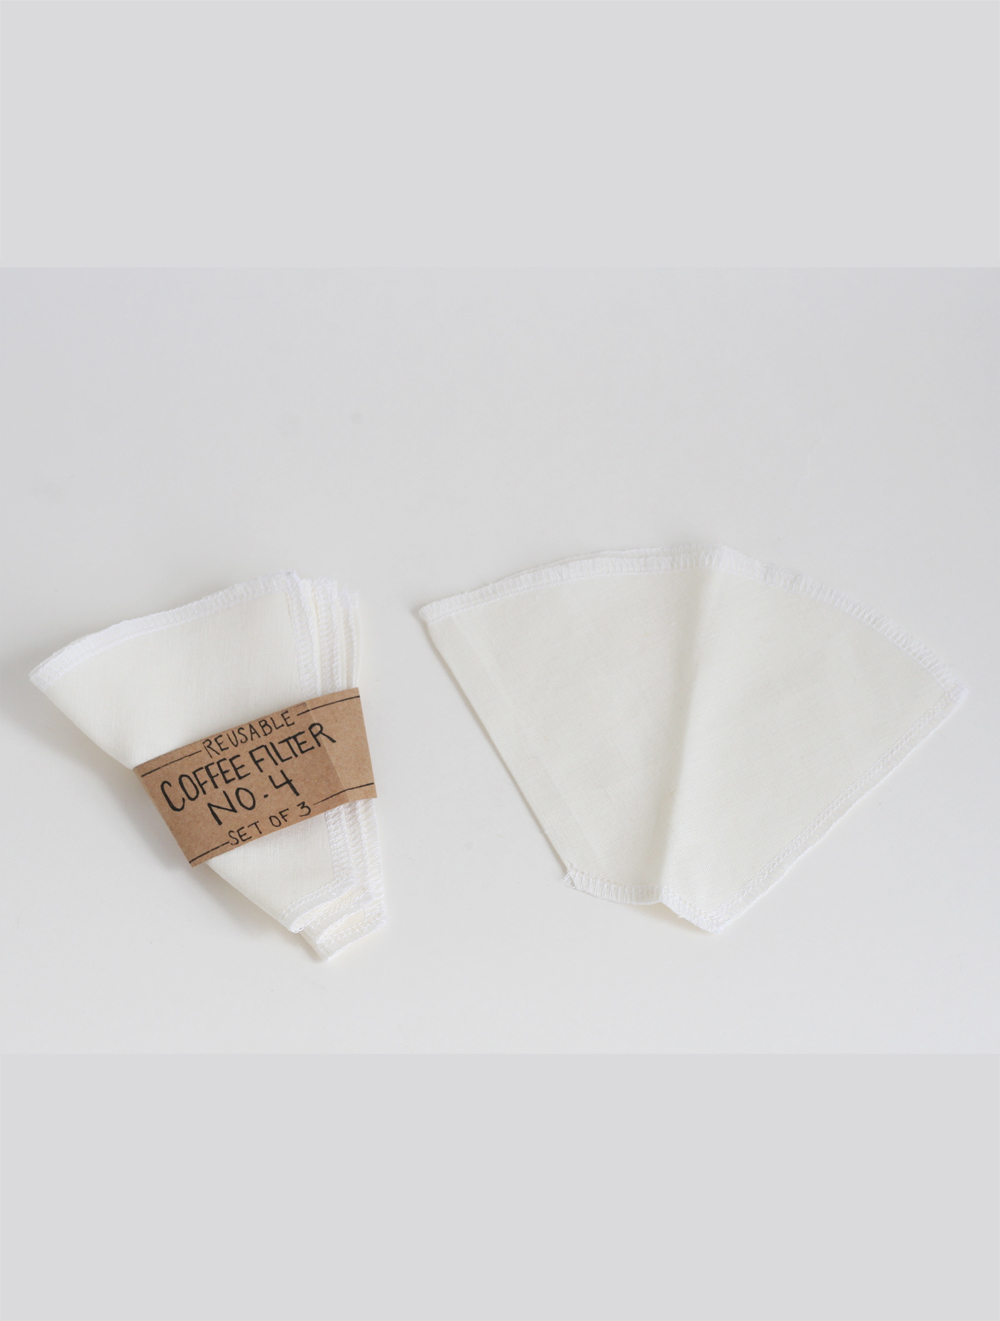 Reusable Coffee Filters $15